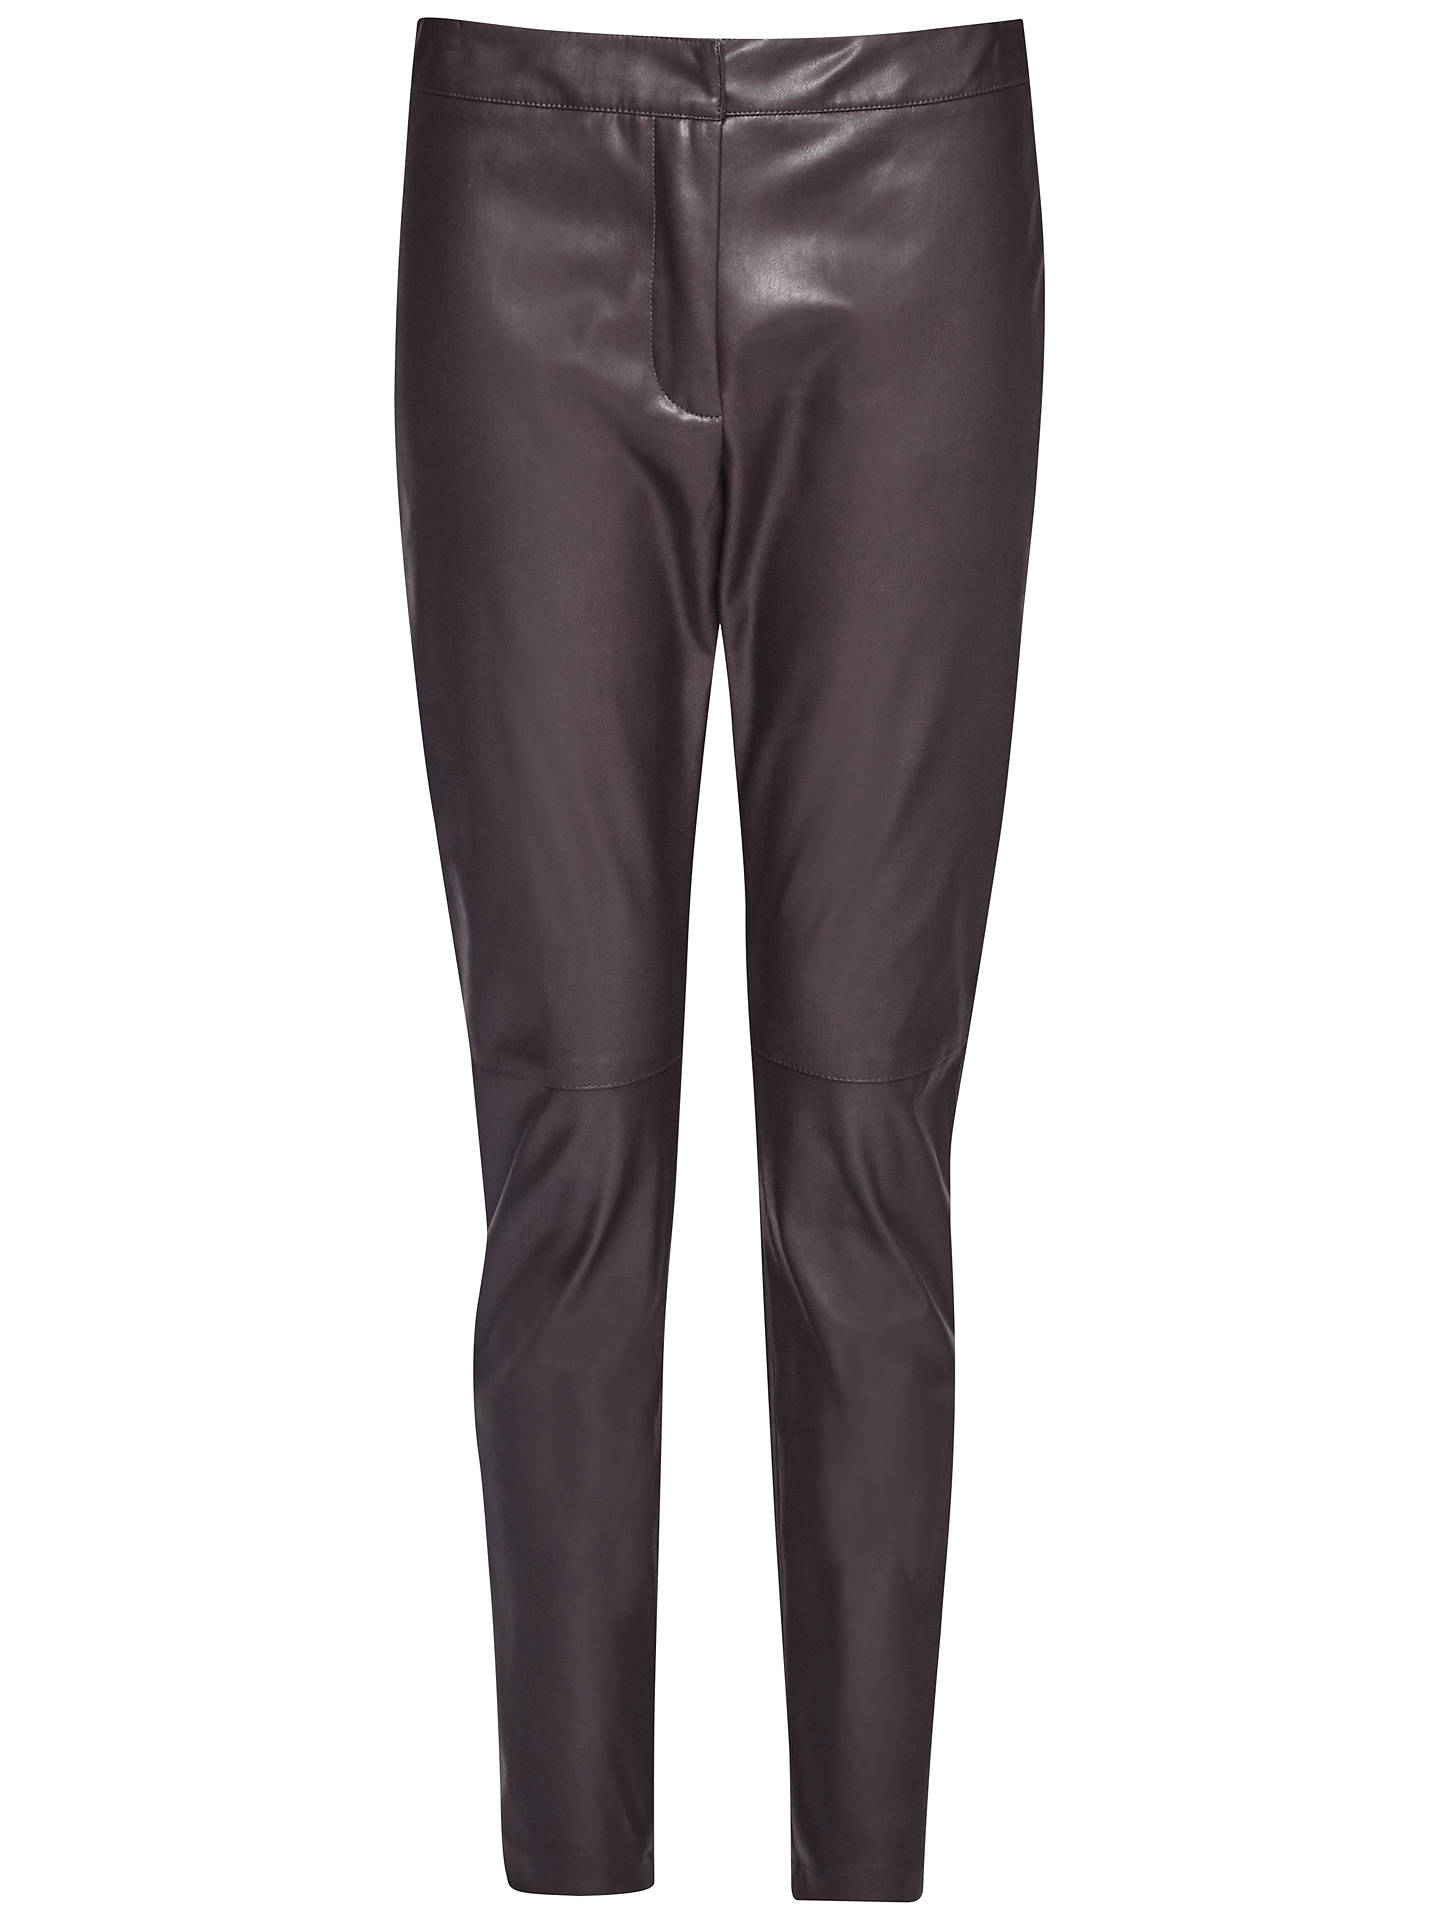 077a50585d7 Buy French Connection Atlantic Faux Leather Trousers, Black Coffee, 6  Online at johnlewis.